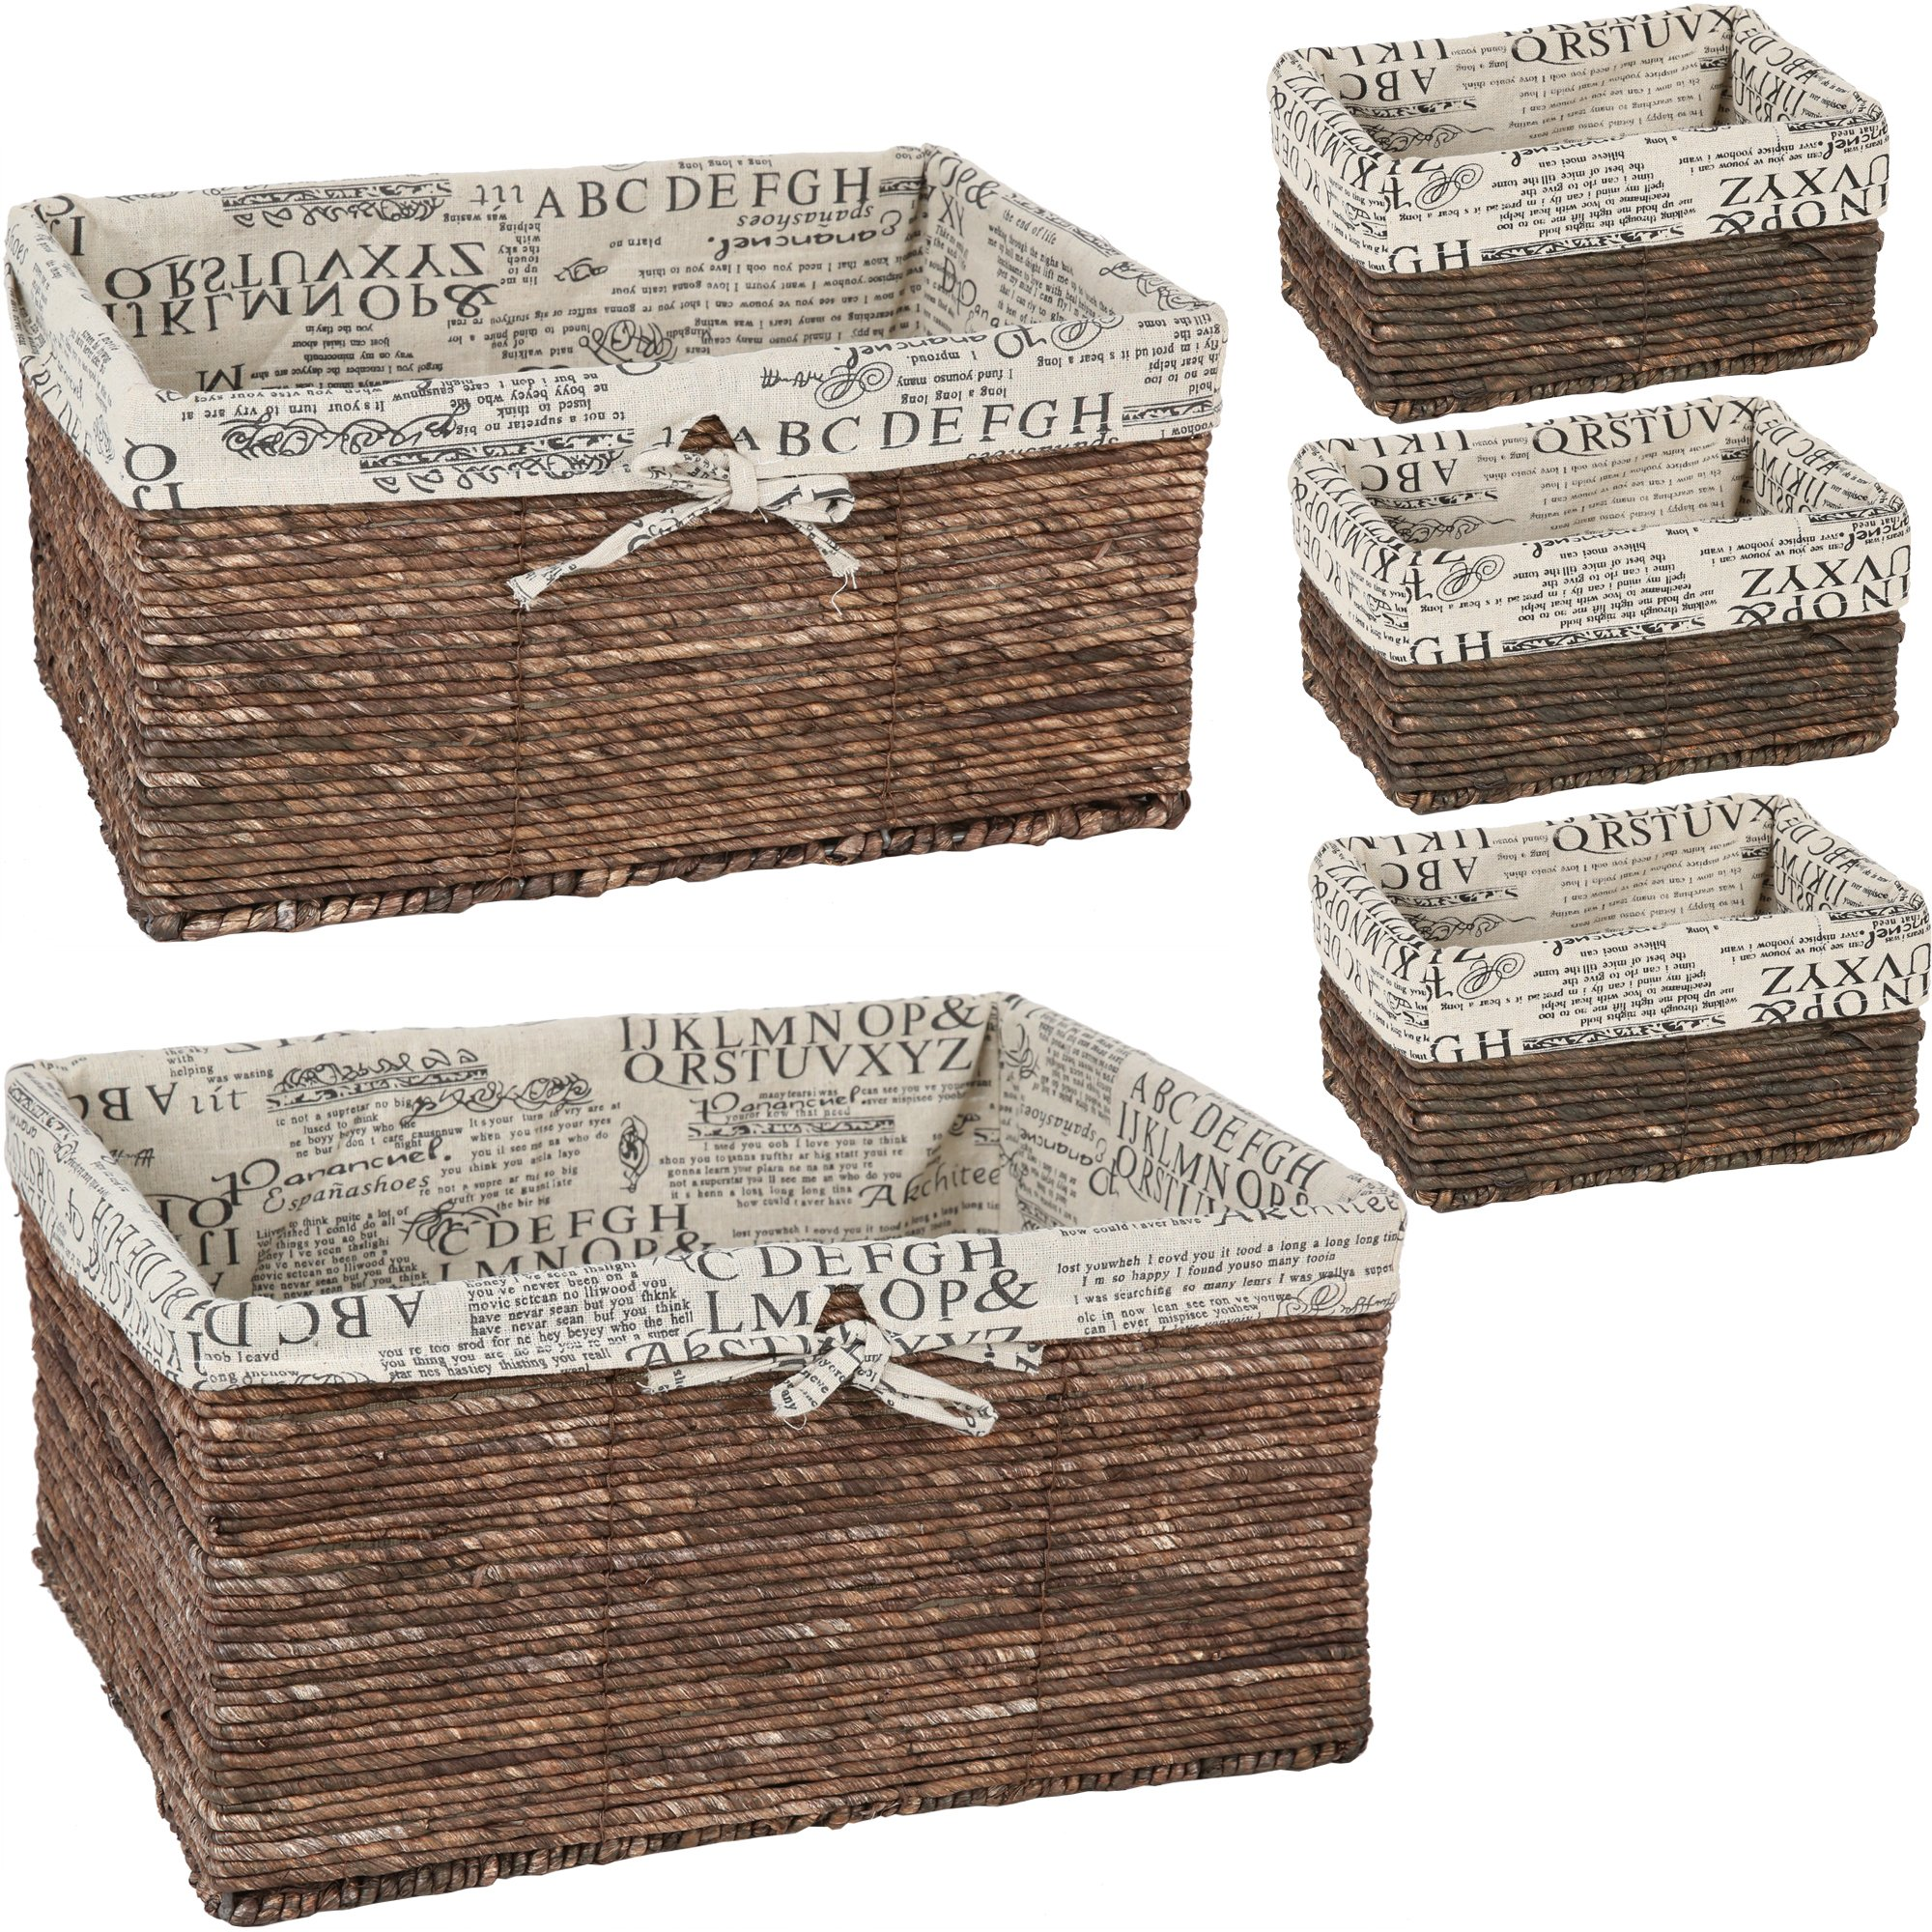 Square wicker baskets for What to put in bathroom baskets